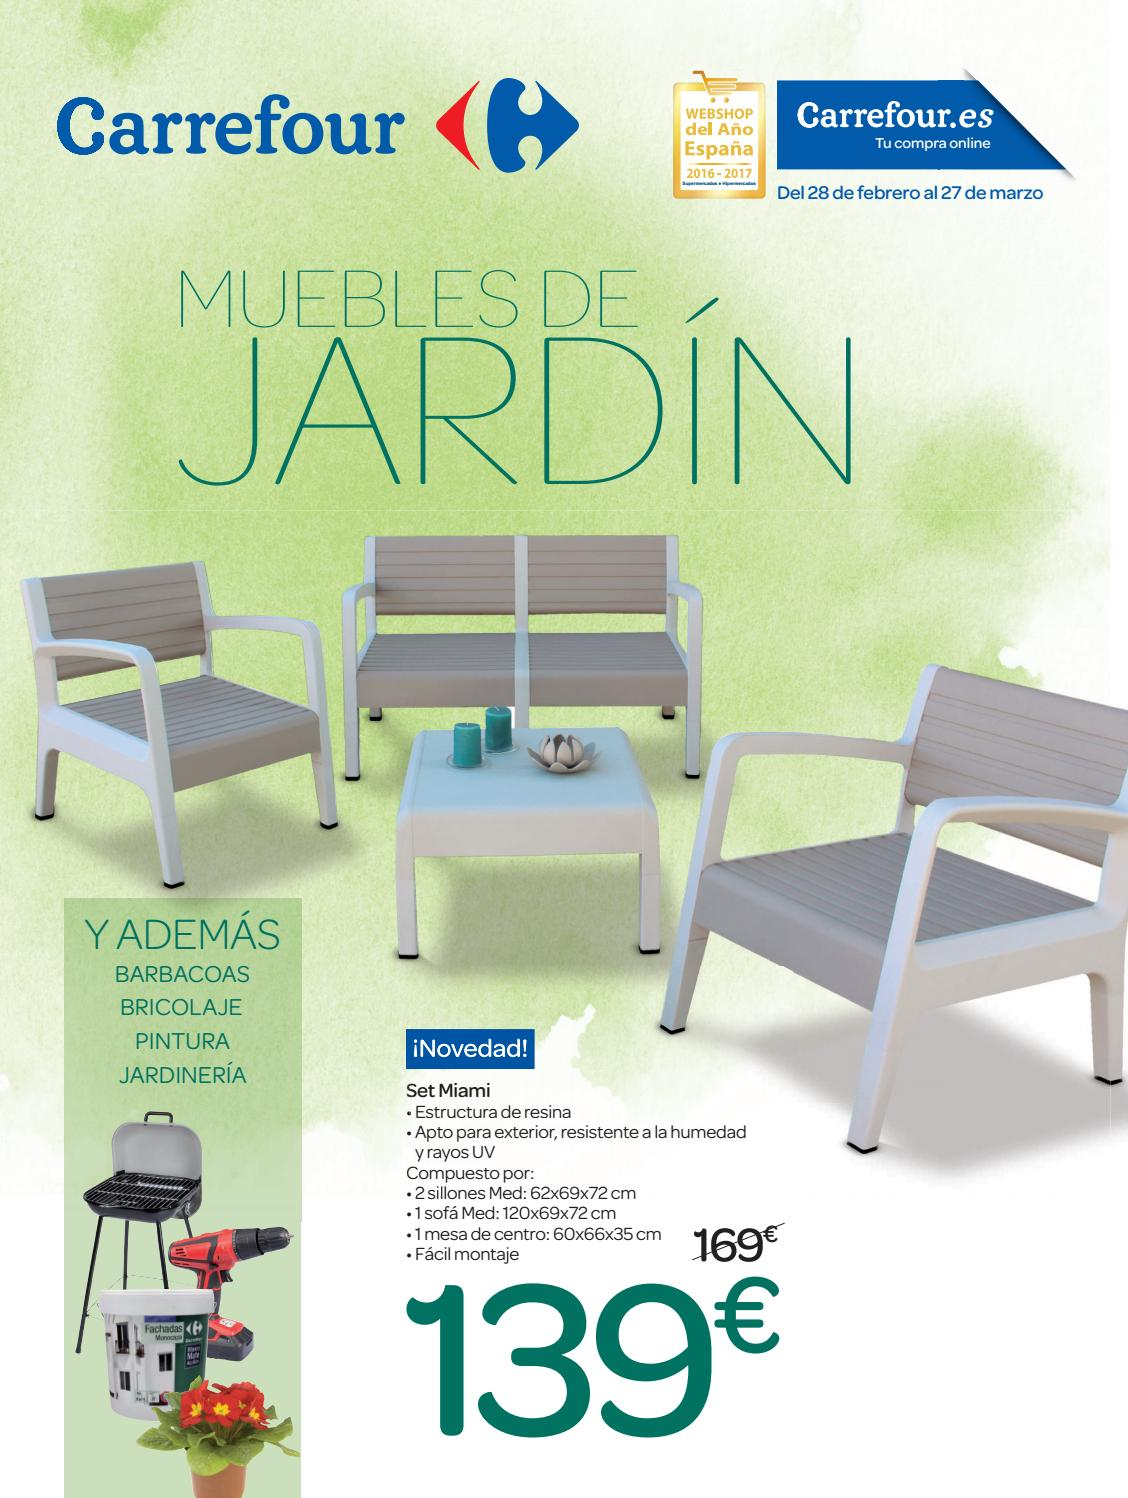 Catalogo De Piscinas Desmontables Carrefour Muebles De Jardin Carrefour By Ofertas Supermercados Issuu